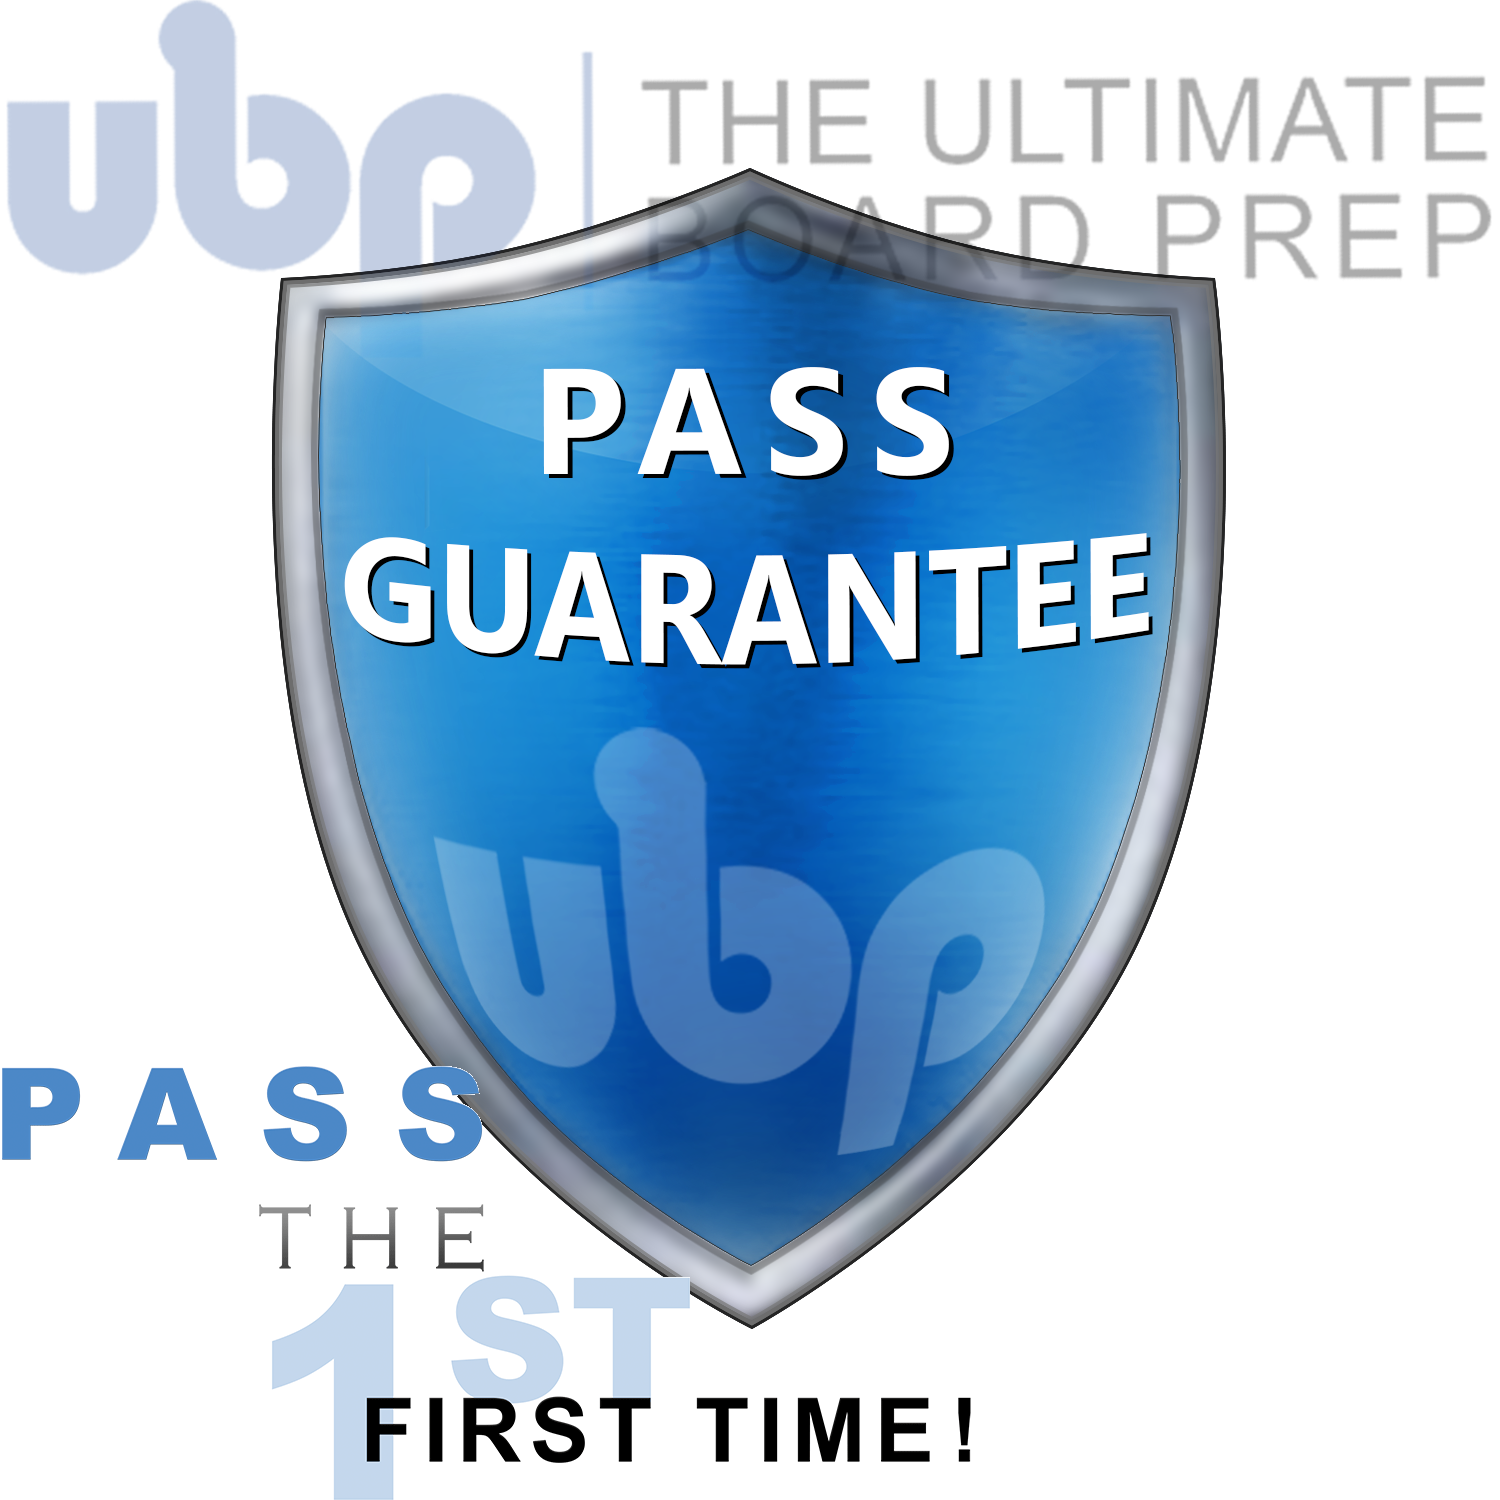 Guarantee_shield_UBP3